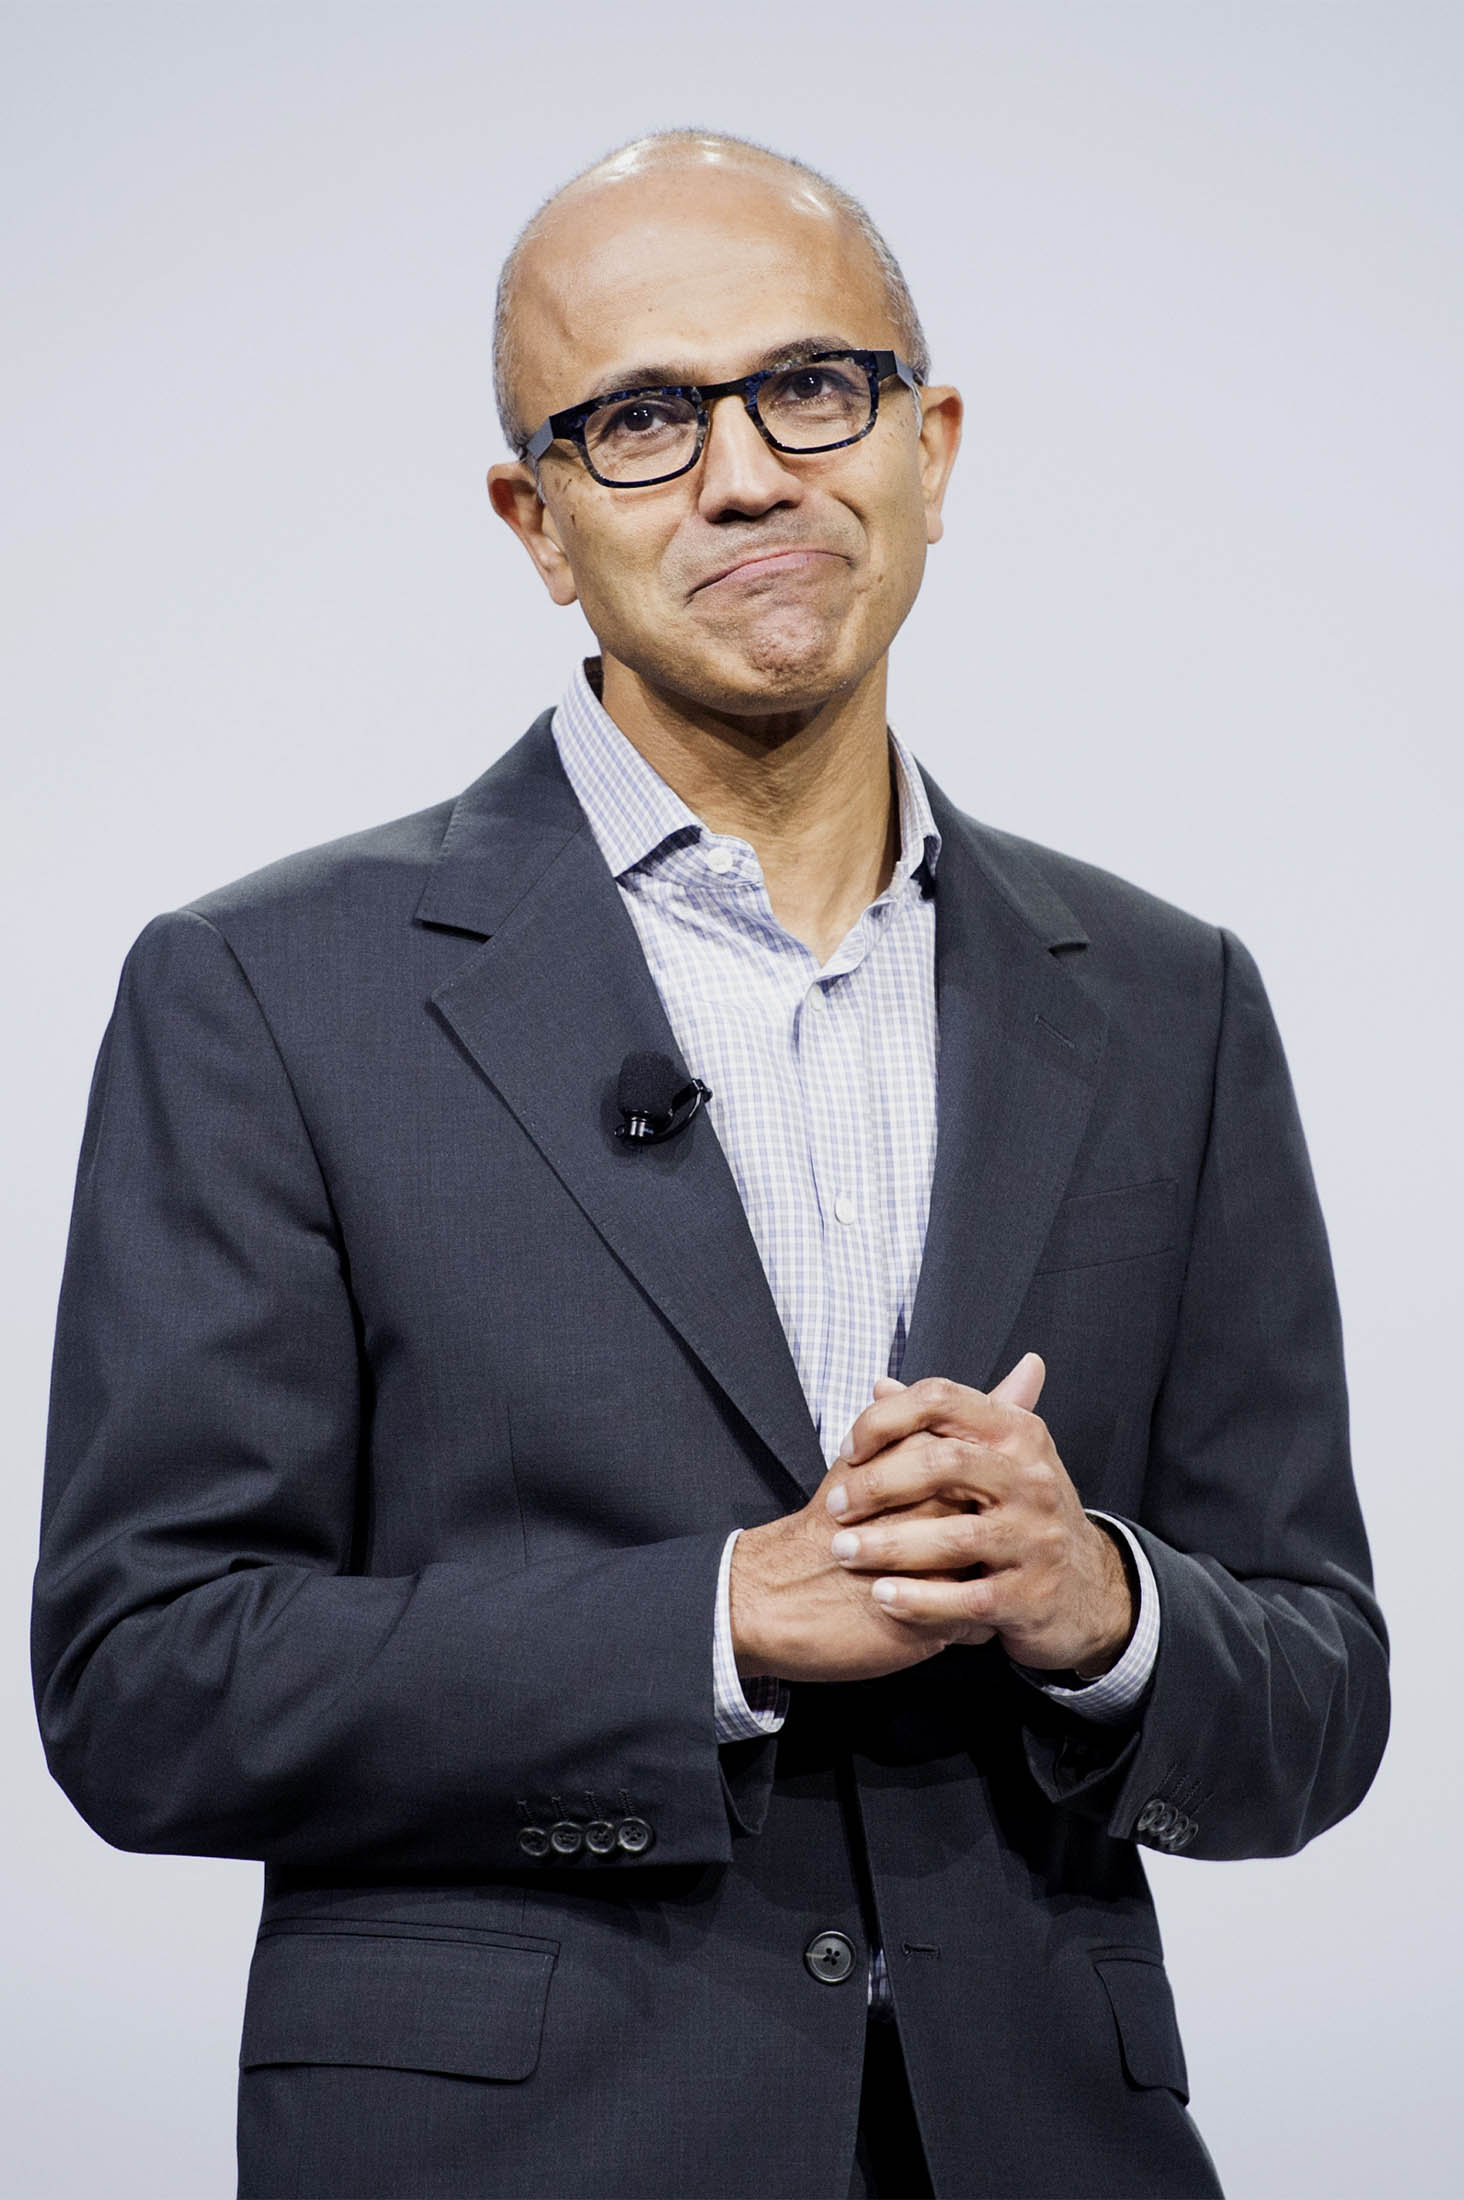 How Microsoft Plans to Beat Google and Facebook to the Next Tech Breakthrough